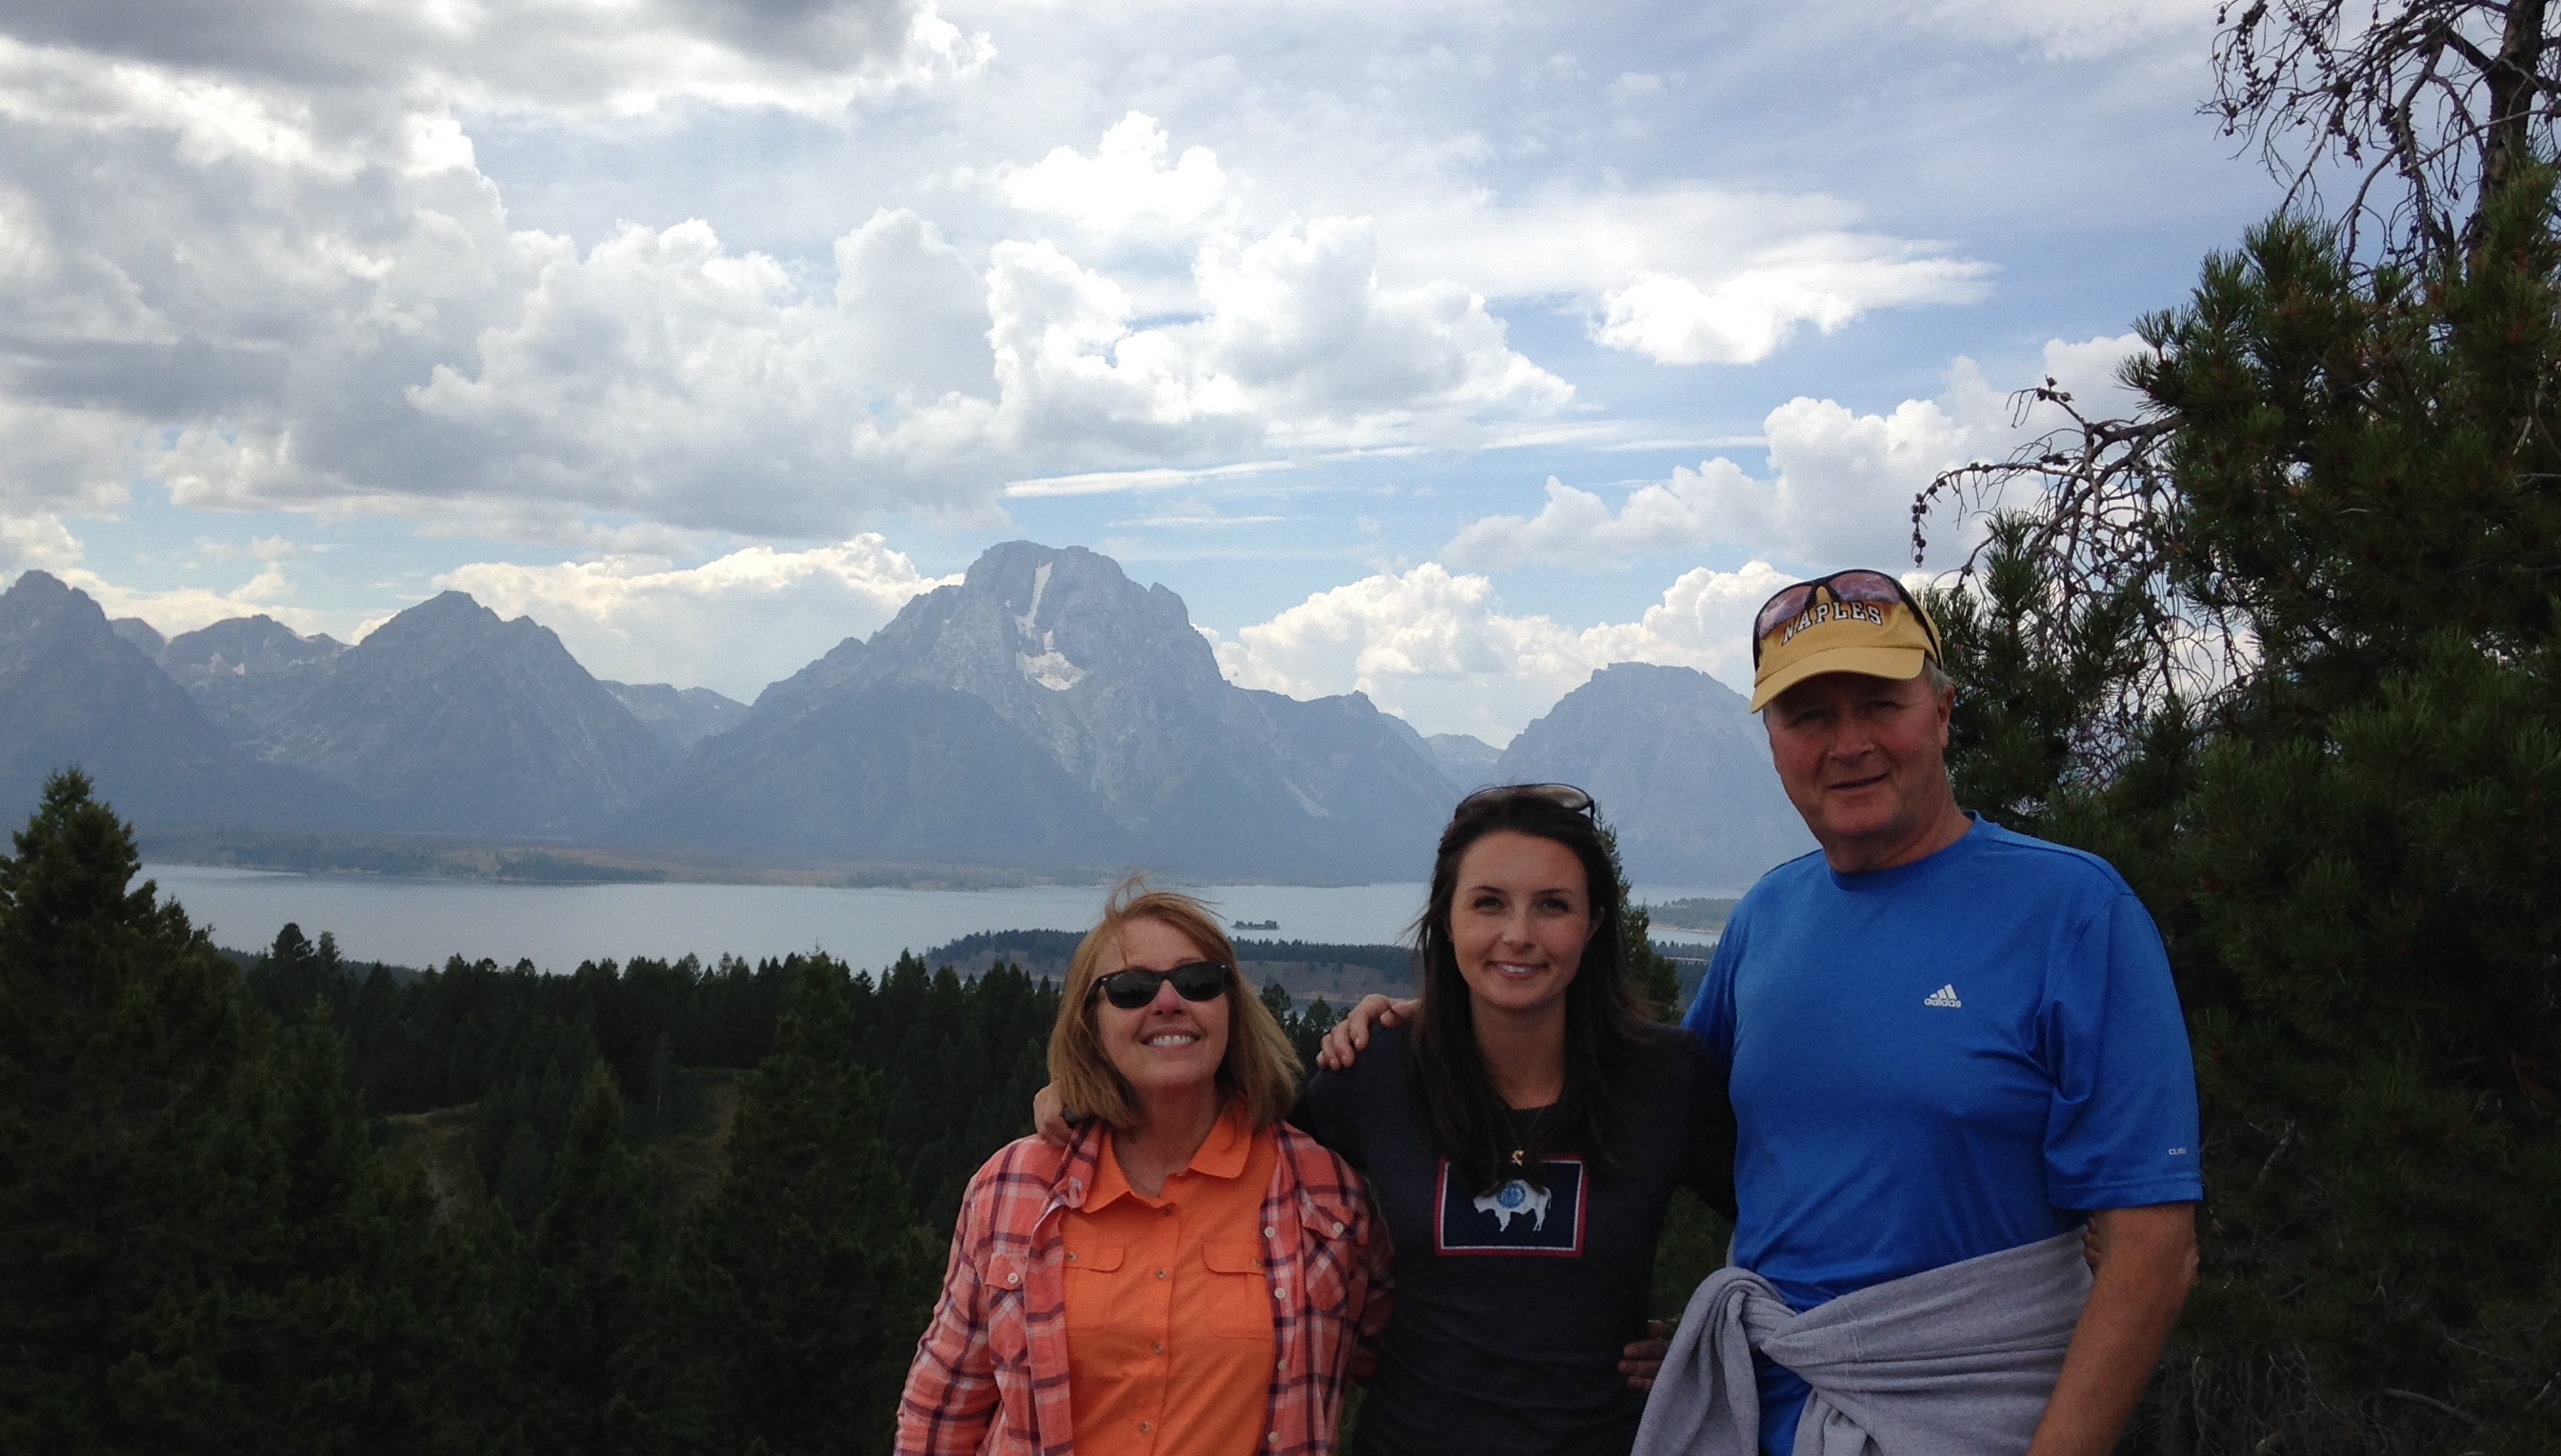 Me, my momm and my dad at The Grand Teton National Park